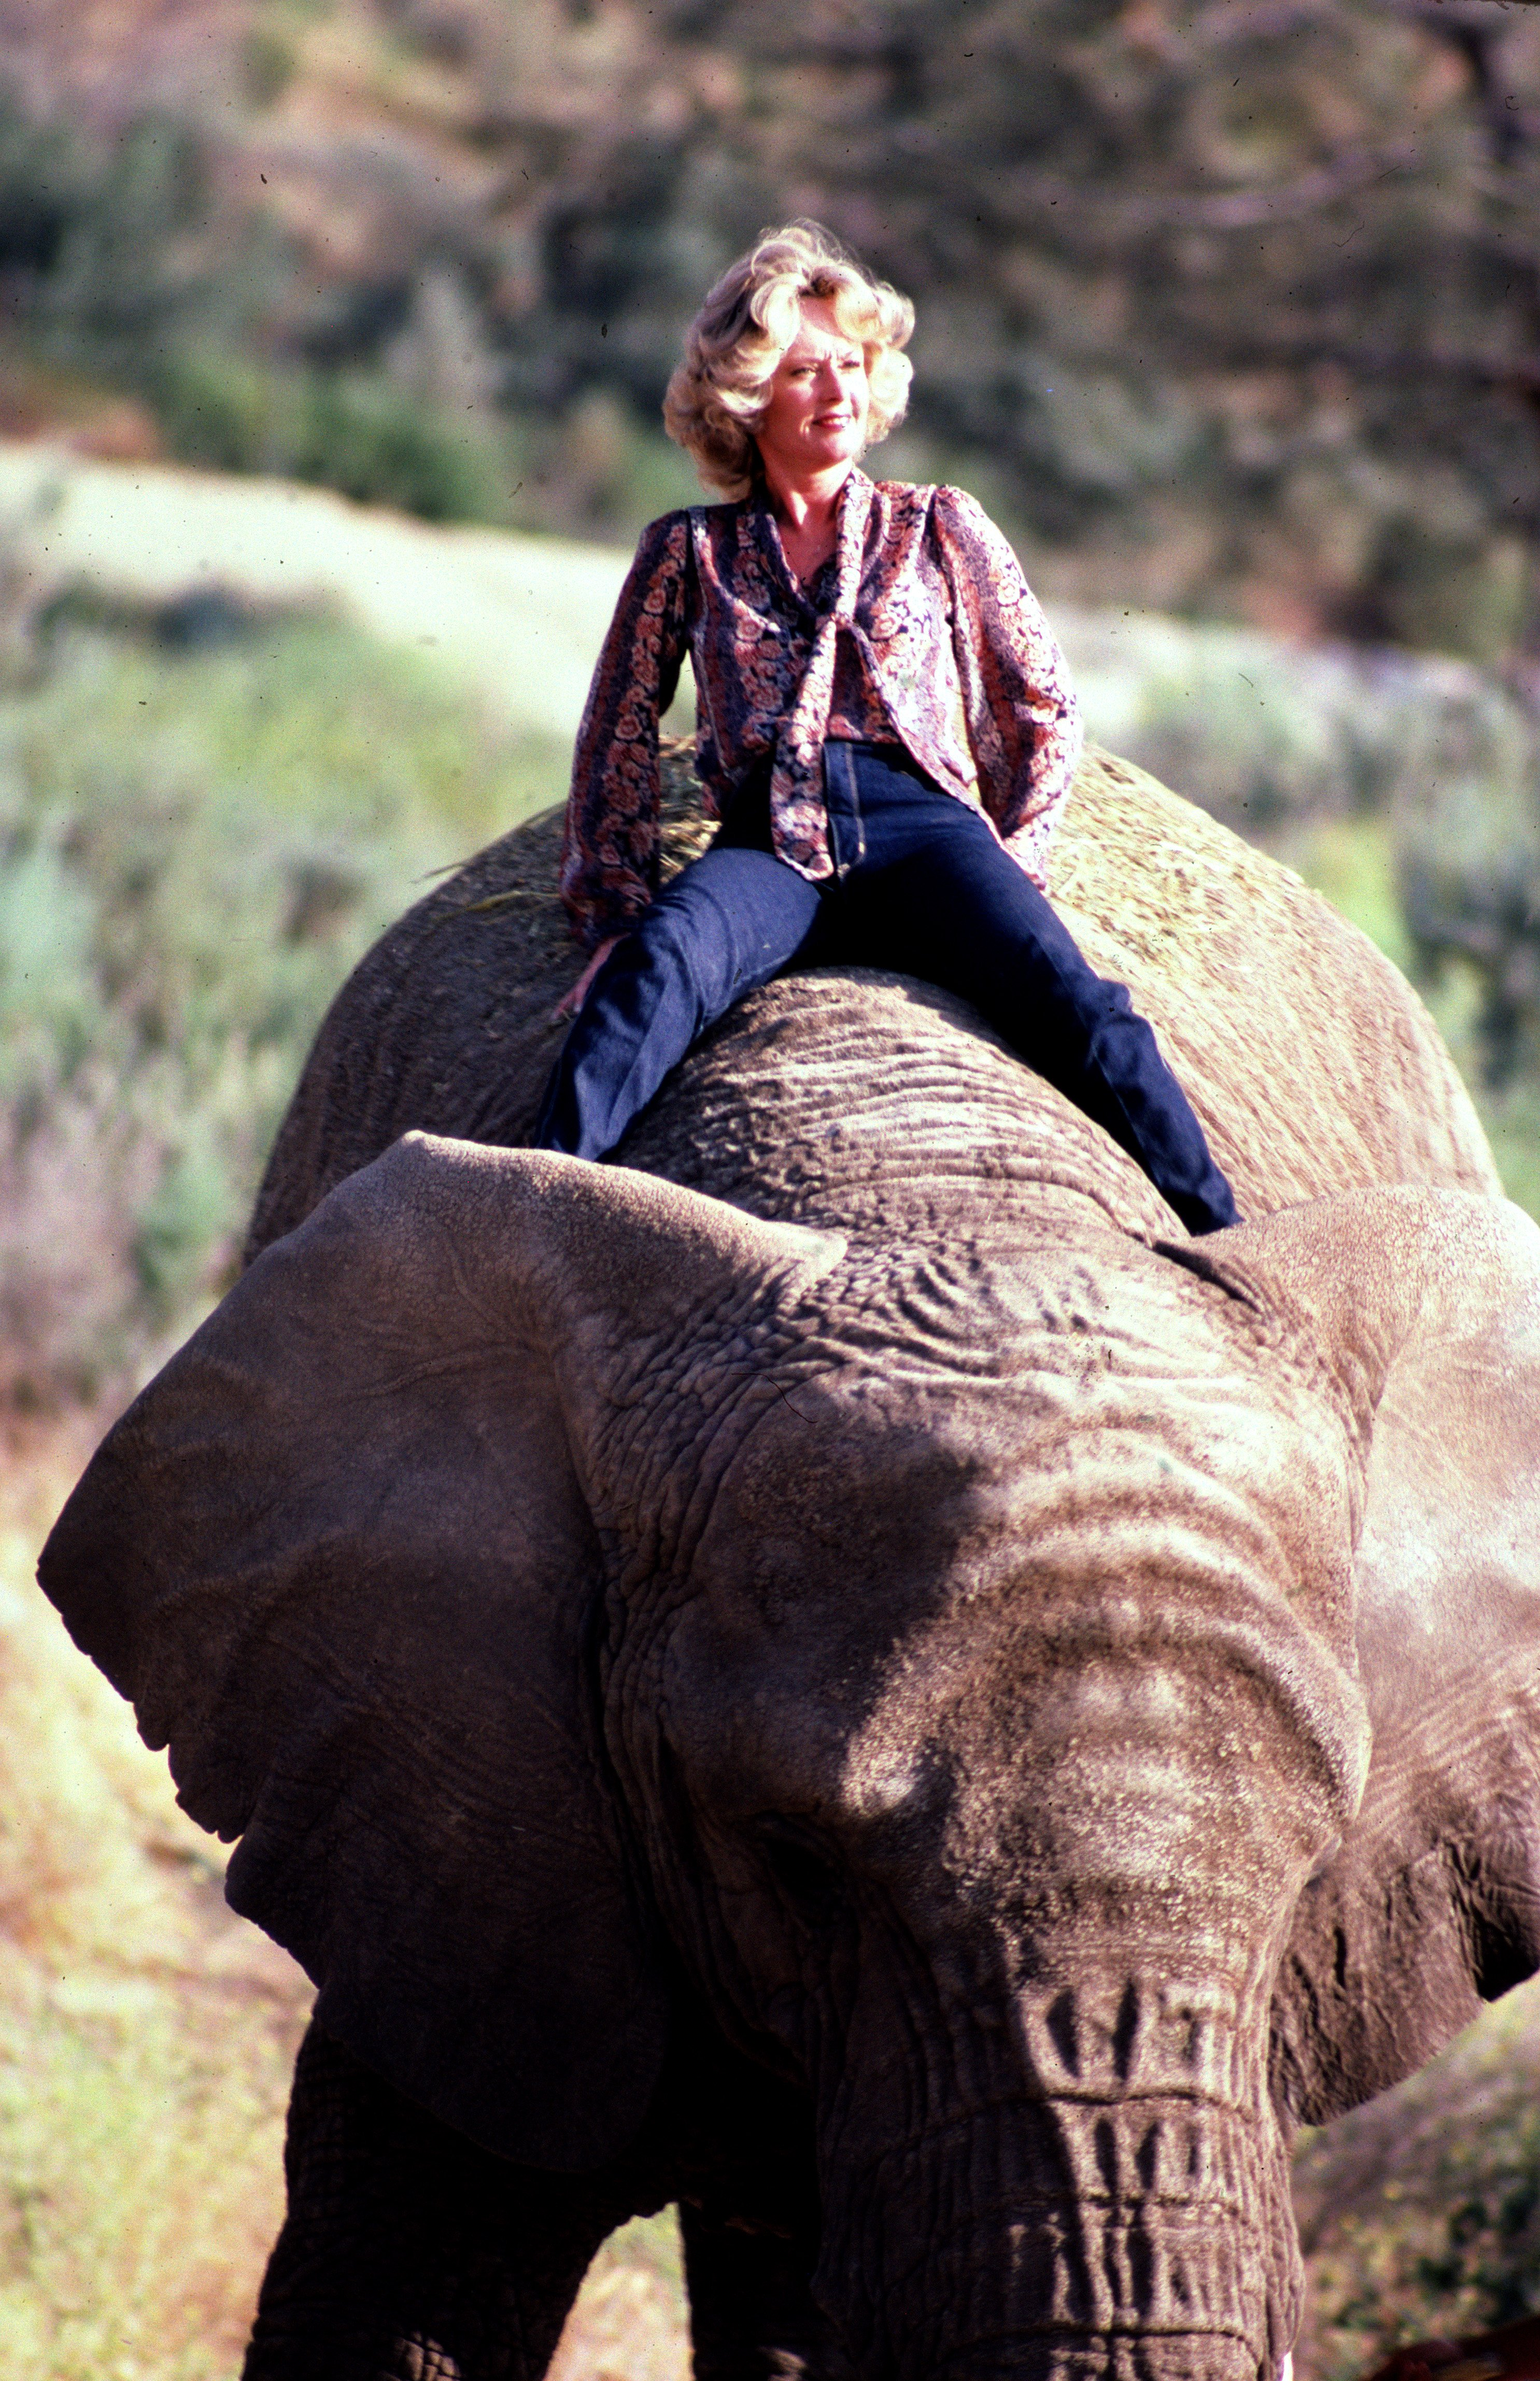 Actress Tippi Hedren, mother of Melanie Griffiths, star of the Alfred Hitchcock horror film The Birds sits astride an Elephant at her Saugus Animal reserve November 17, 1983 at a table in Saugus, California. | Source: Getty Images